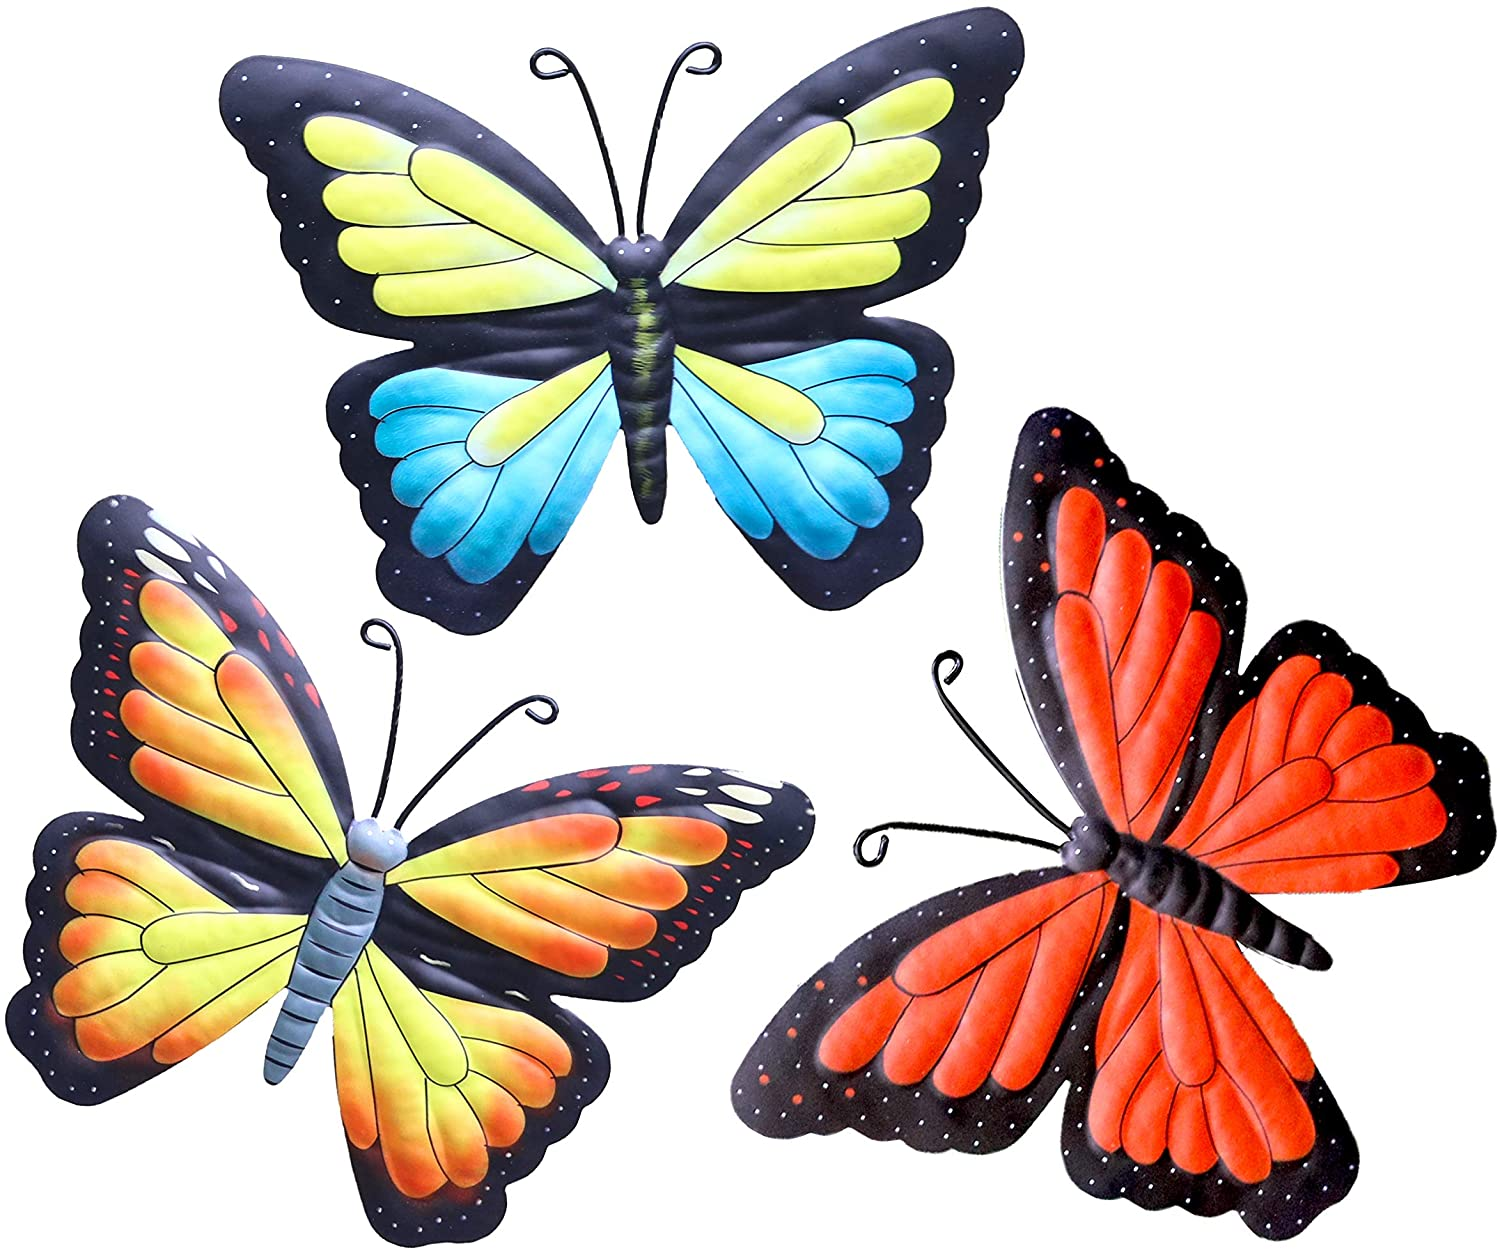 Hanizi 3 Pack Large Metal Butterfly Wall Decoration, 9.5 x 7.1 Inch Indoor Outdoor Wall Sculptures